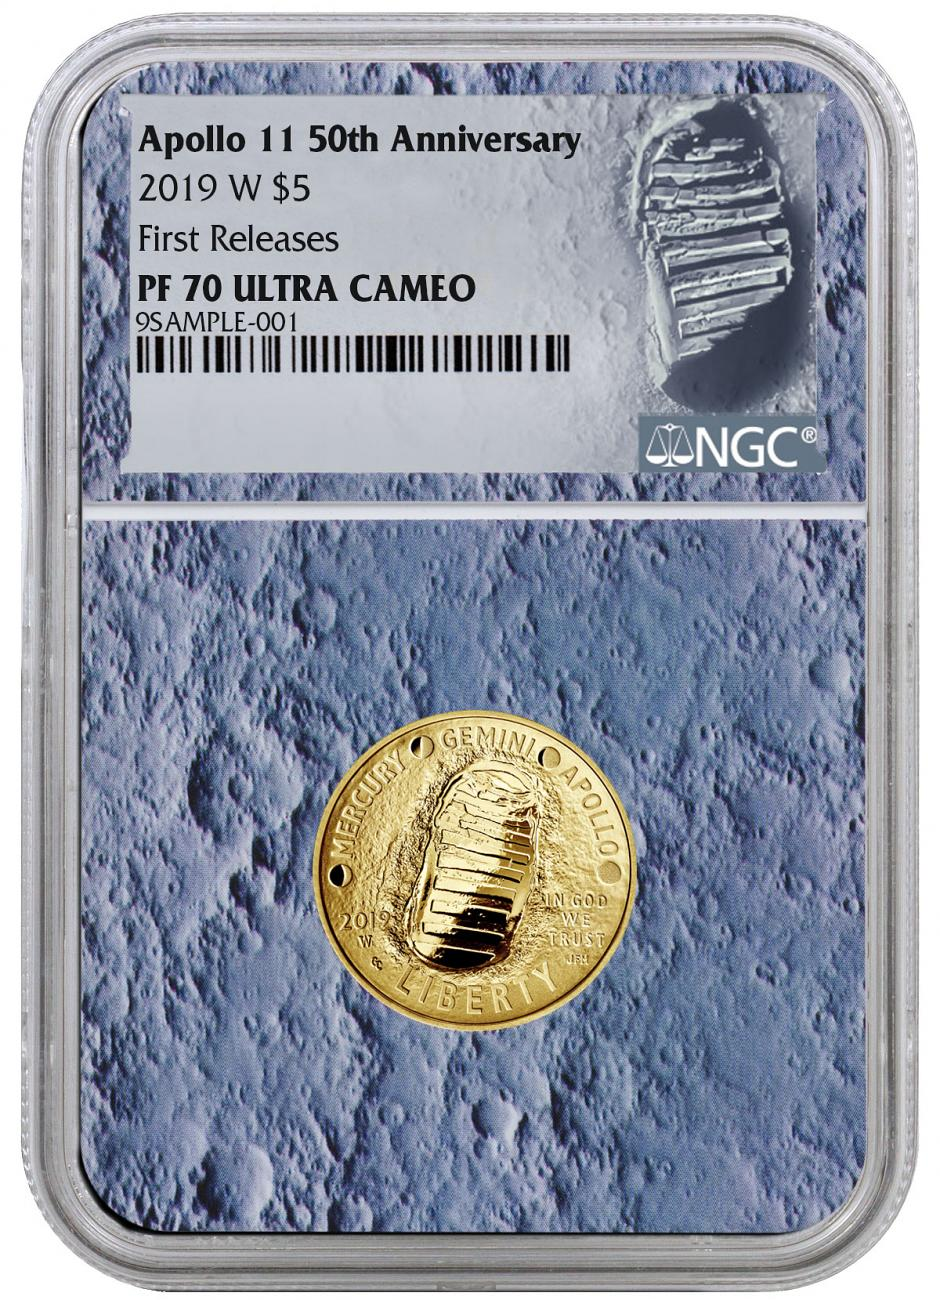 2019-W Apollo 11 50th Anniversary $5 Gold Commemorative Proof Coin NGC PF70 FR With Apollo 11 Mission Patch Moon Core Holder